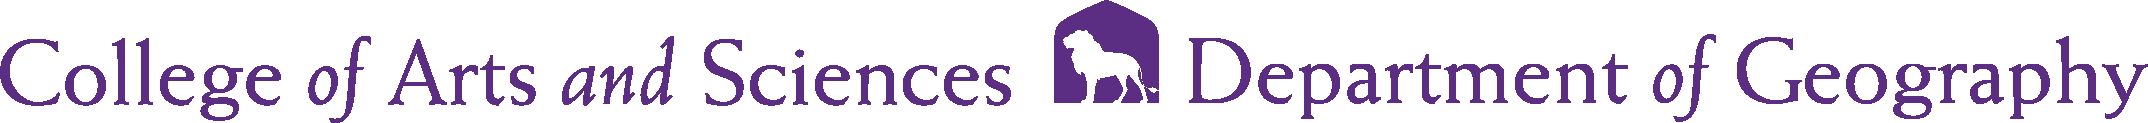 College of Arts and Sciences - Geography Logo - Purple - Version 2